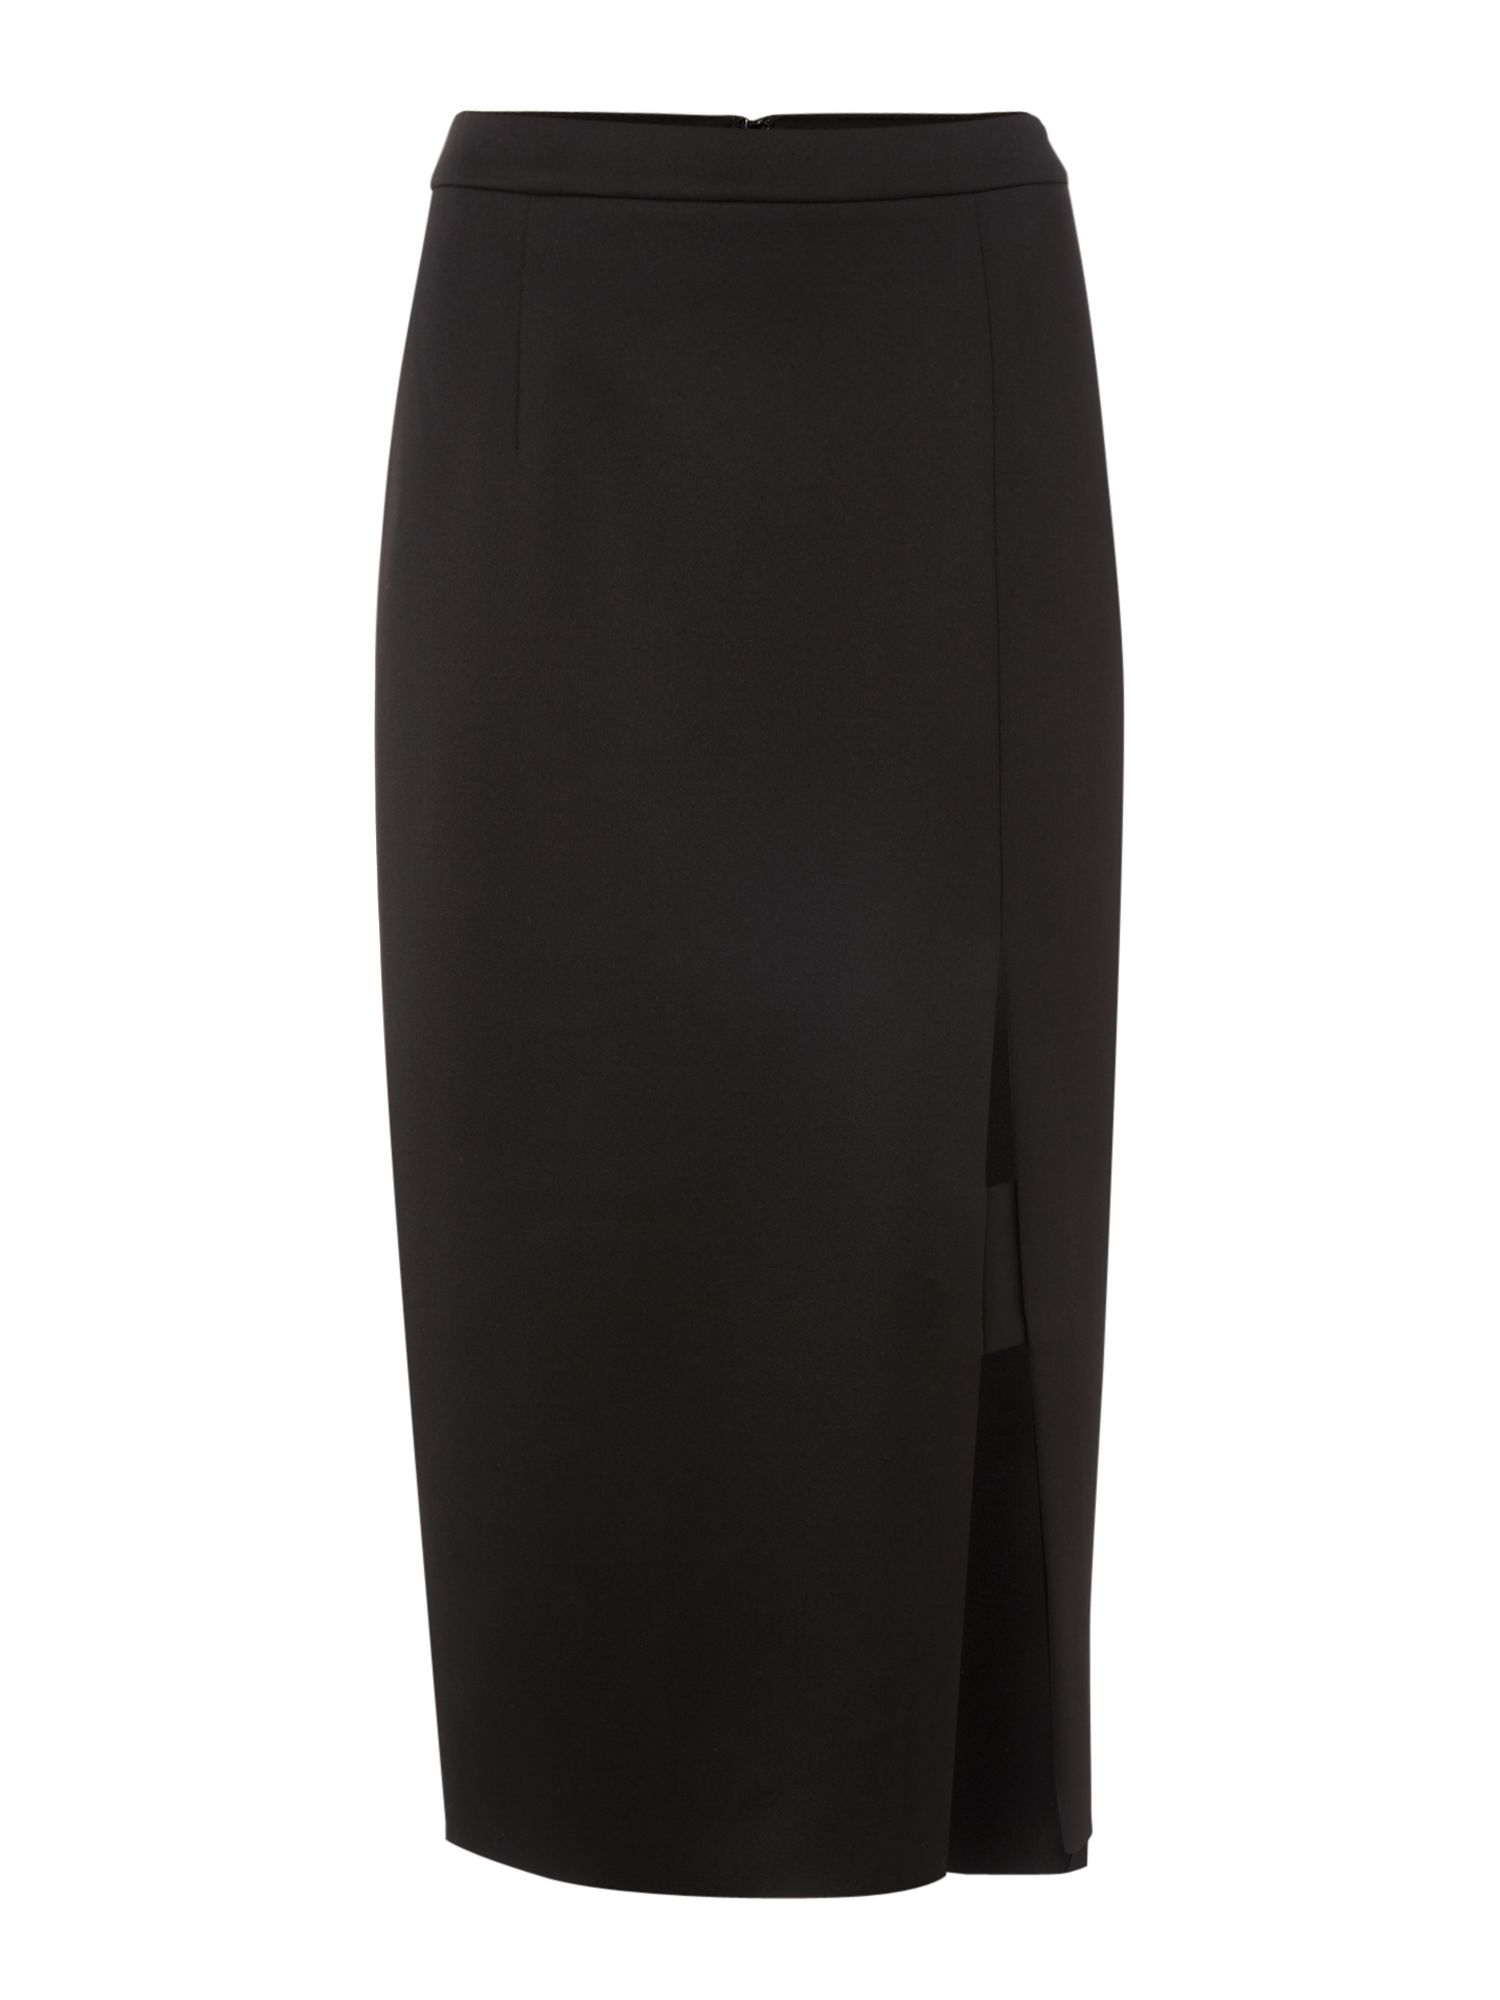 Label Lab Panelled Scuba Skirt, Black